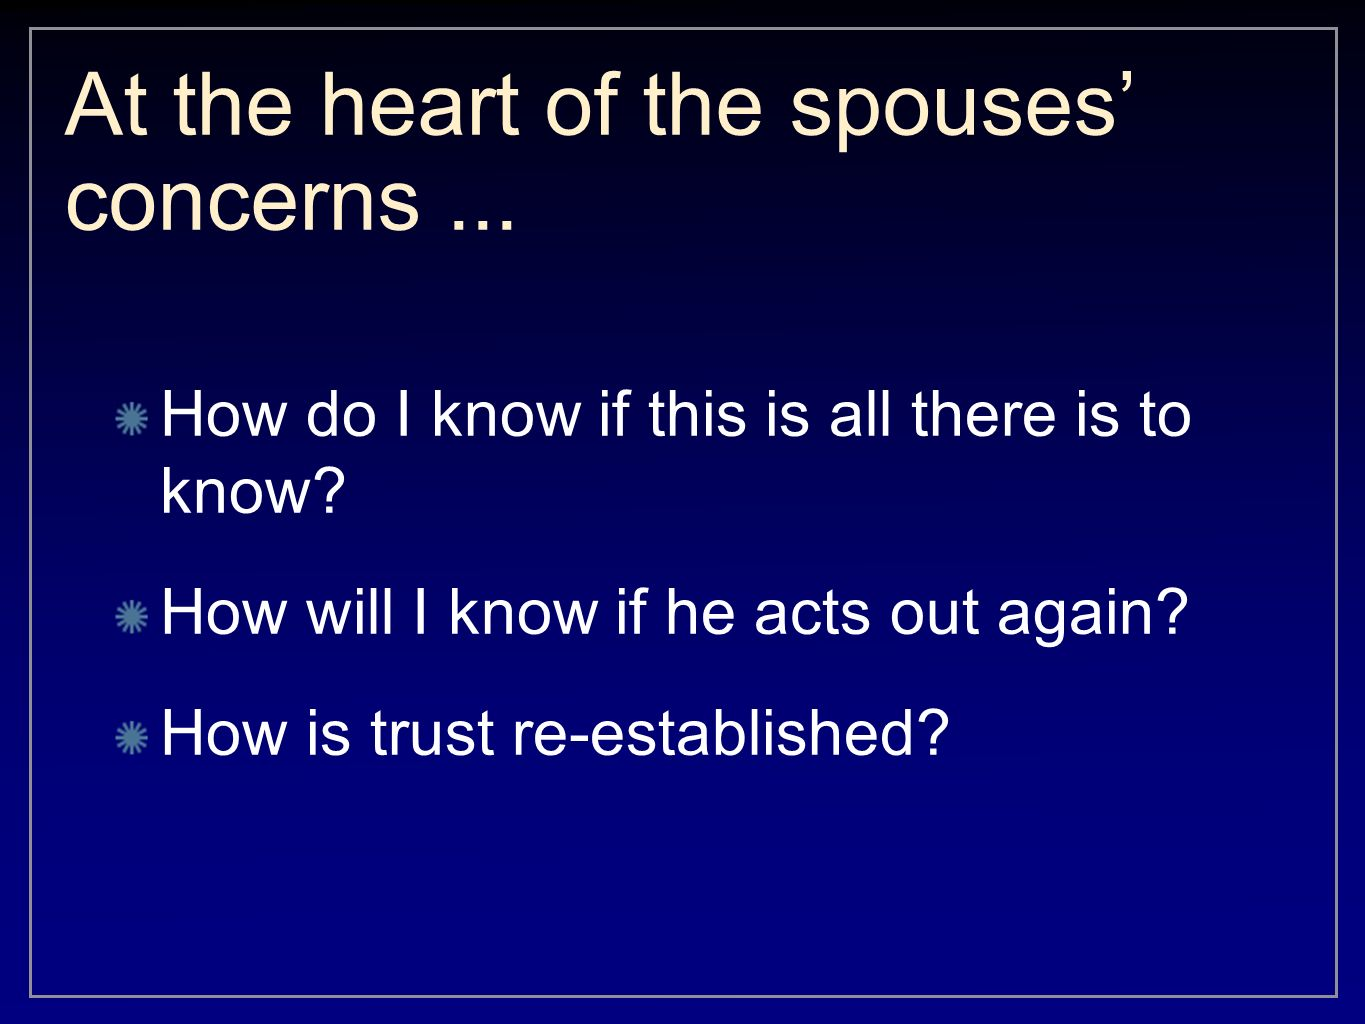 At the heart of the spouses' concerns ...